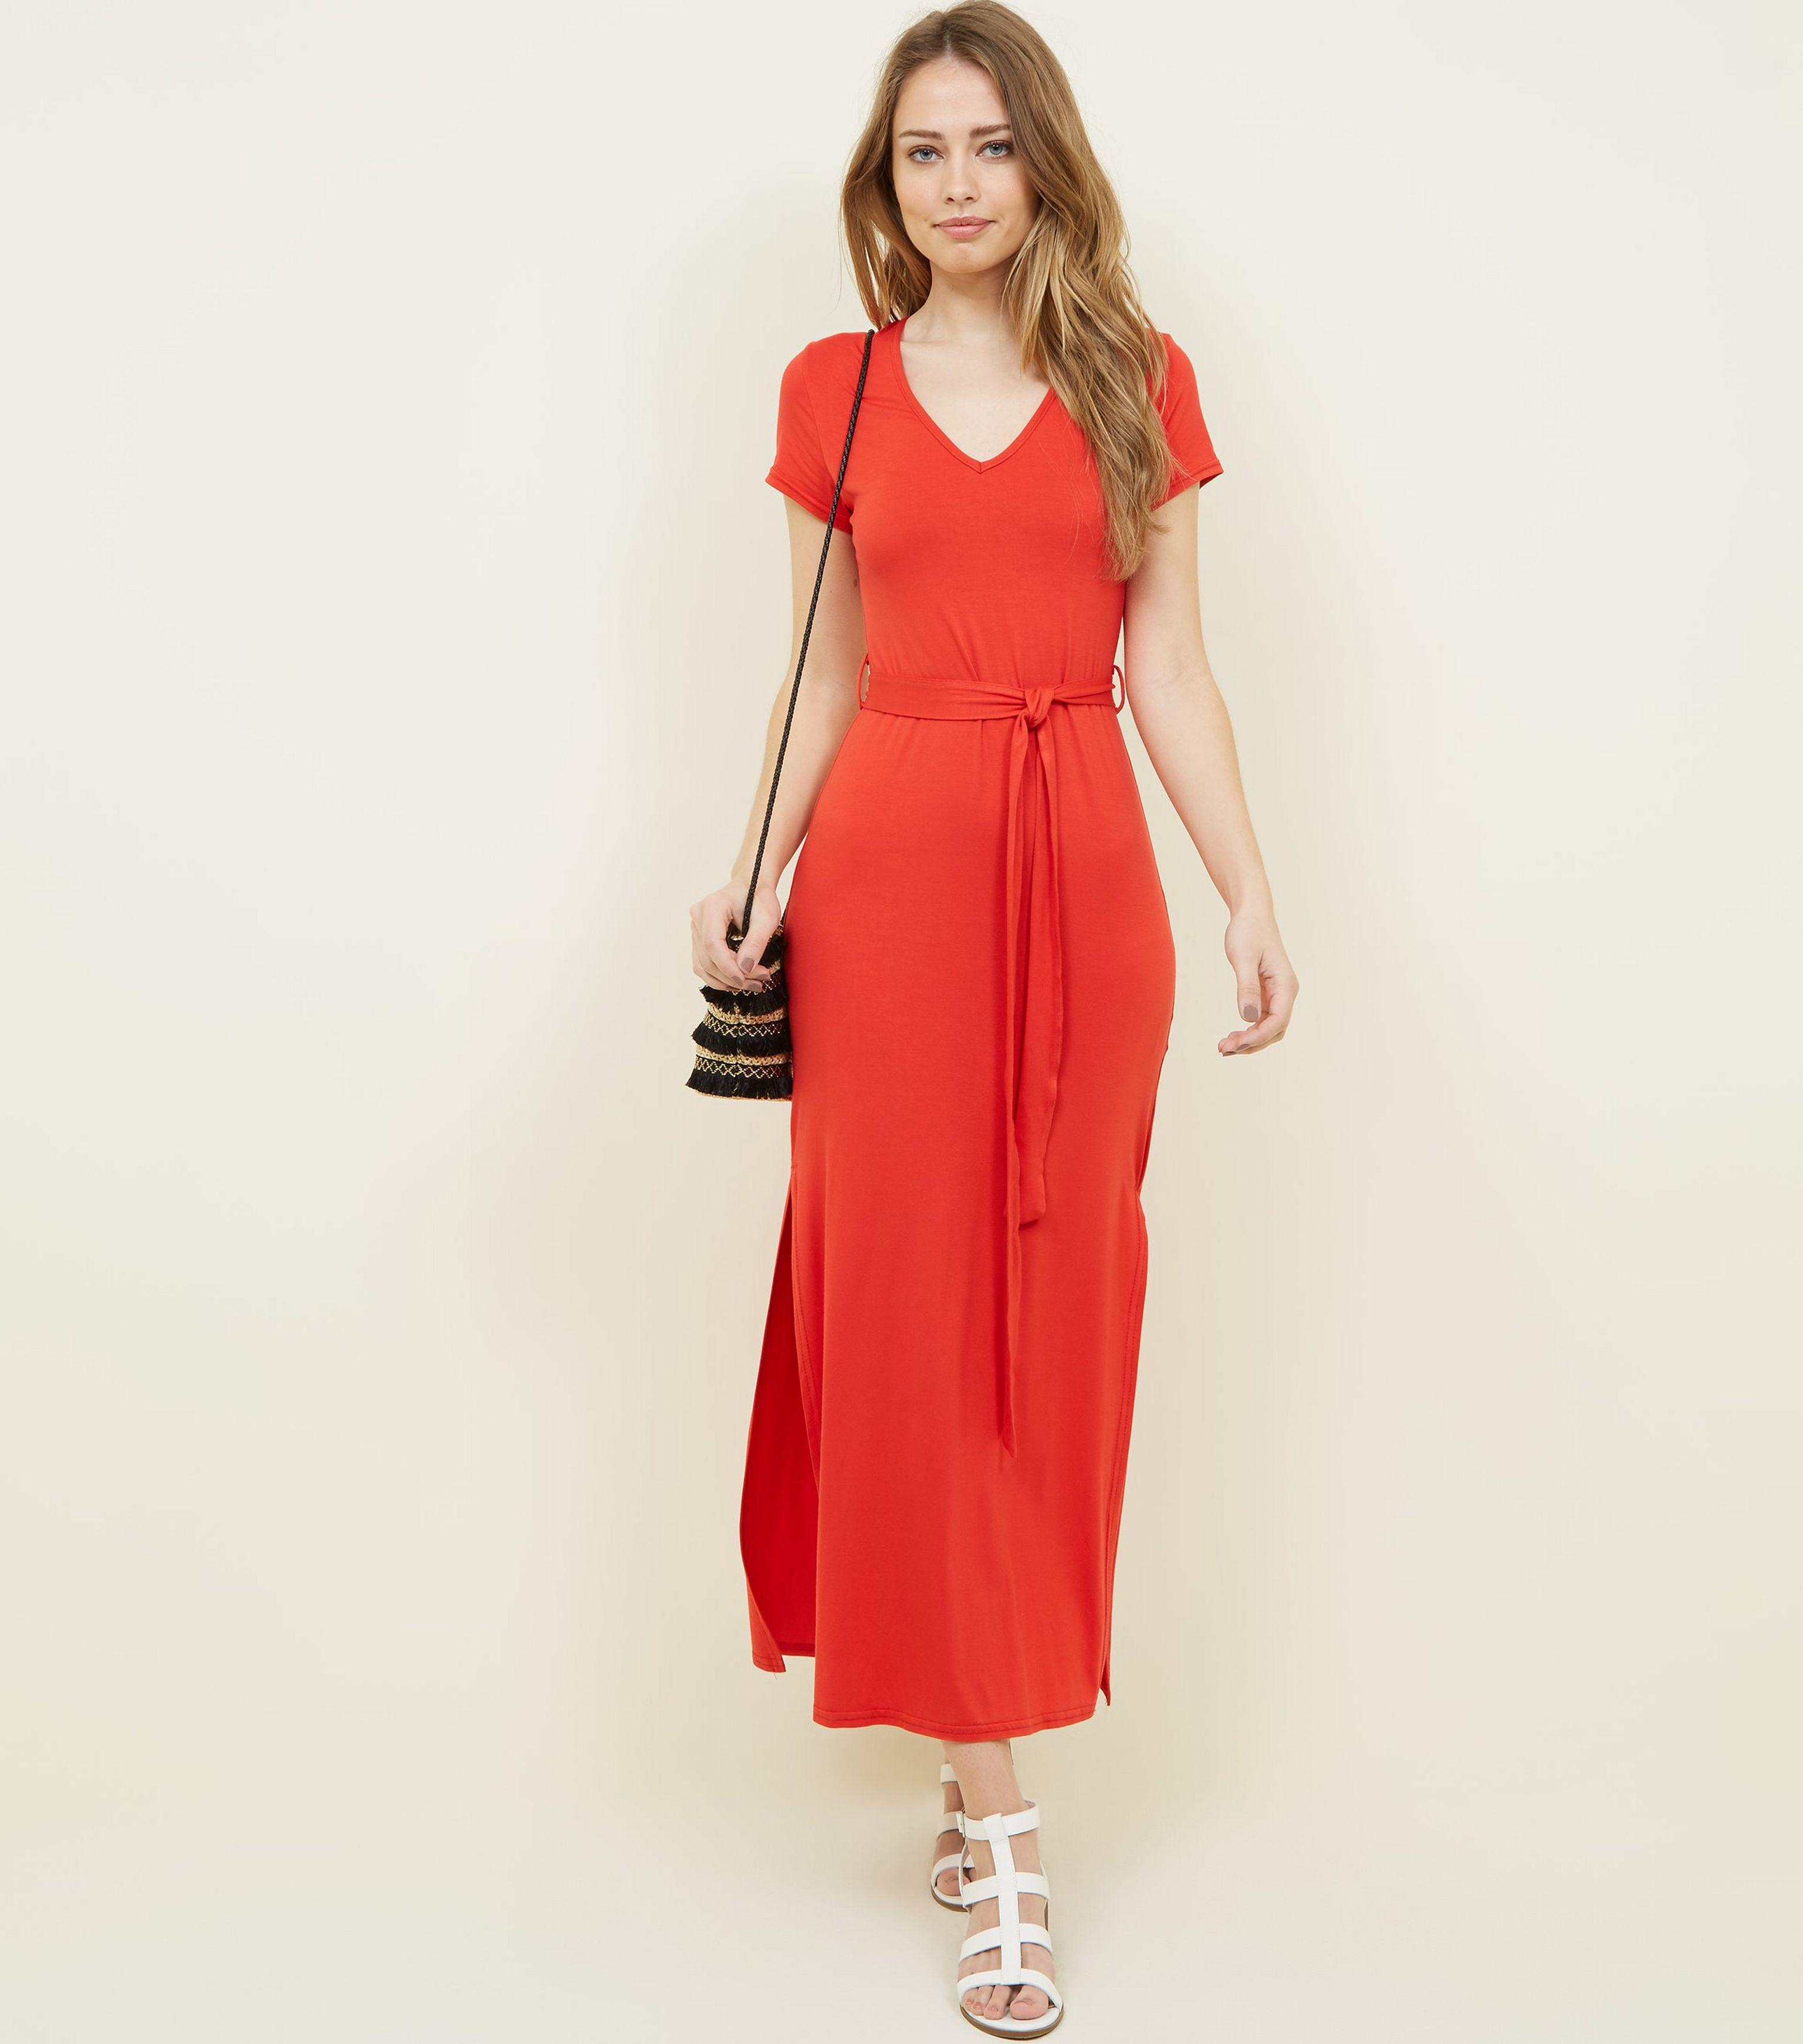 81b41279fc14 Gallery. Previously sold at  New Look · Women s Jersey Dresses Women s  Ruffle Maxi ...